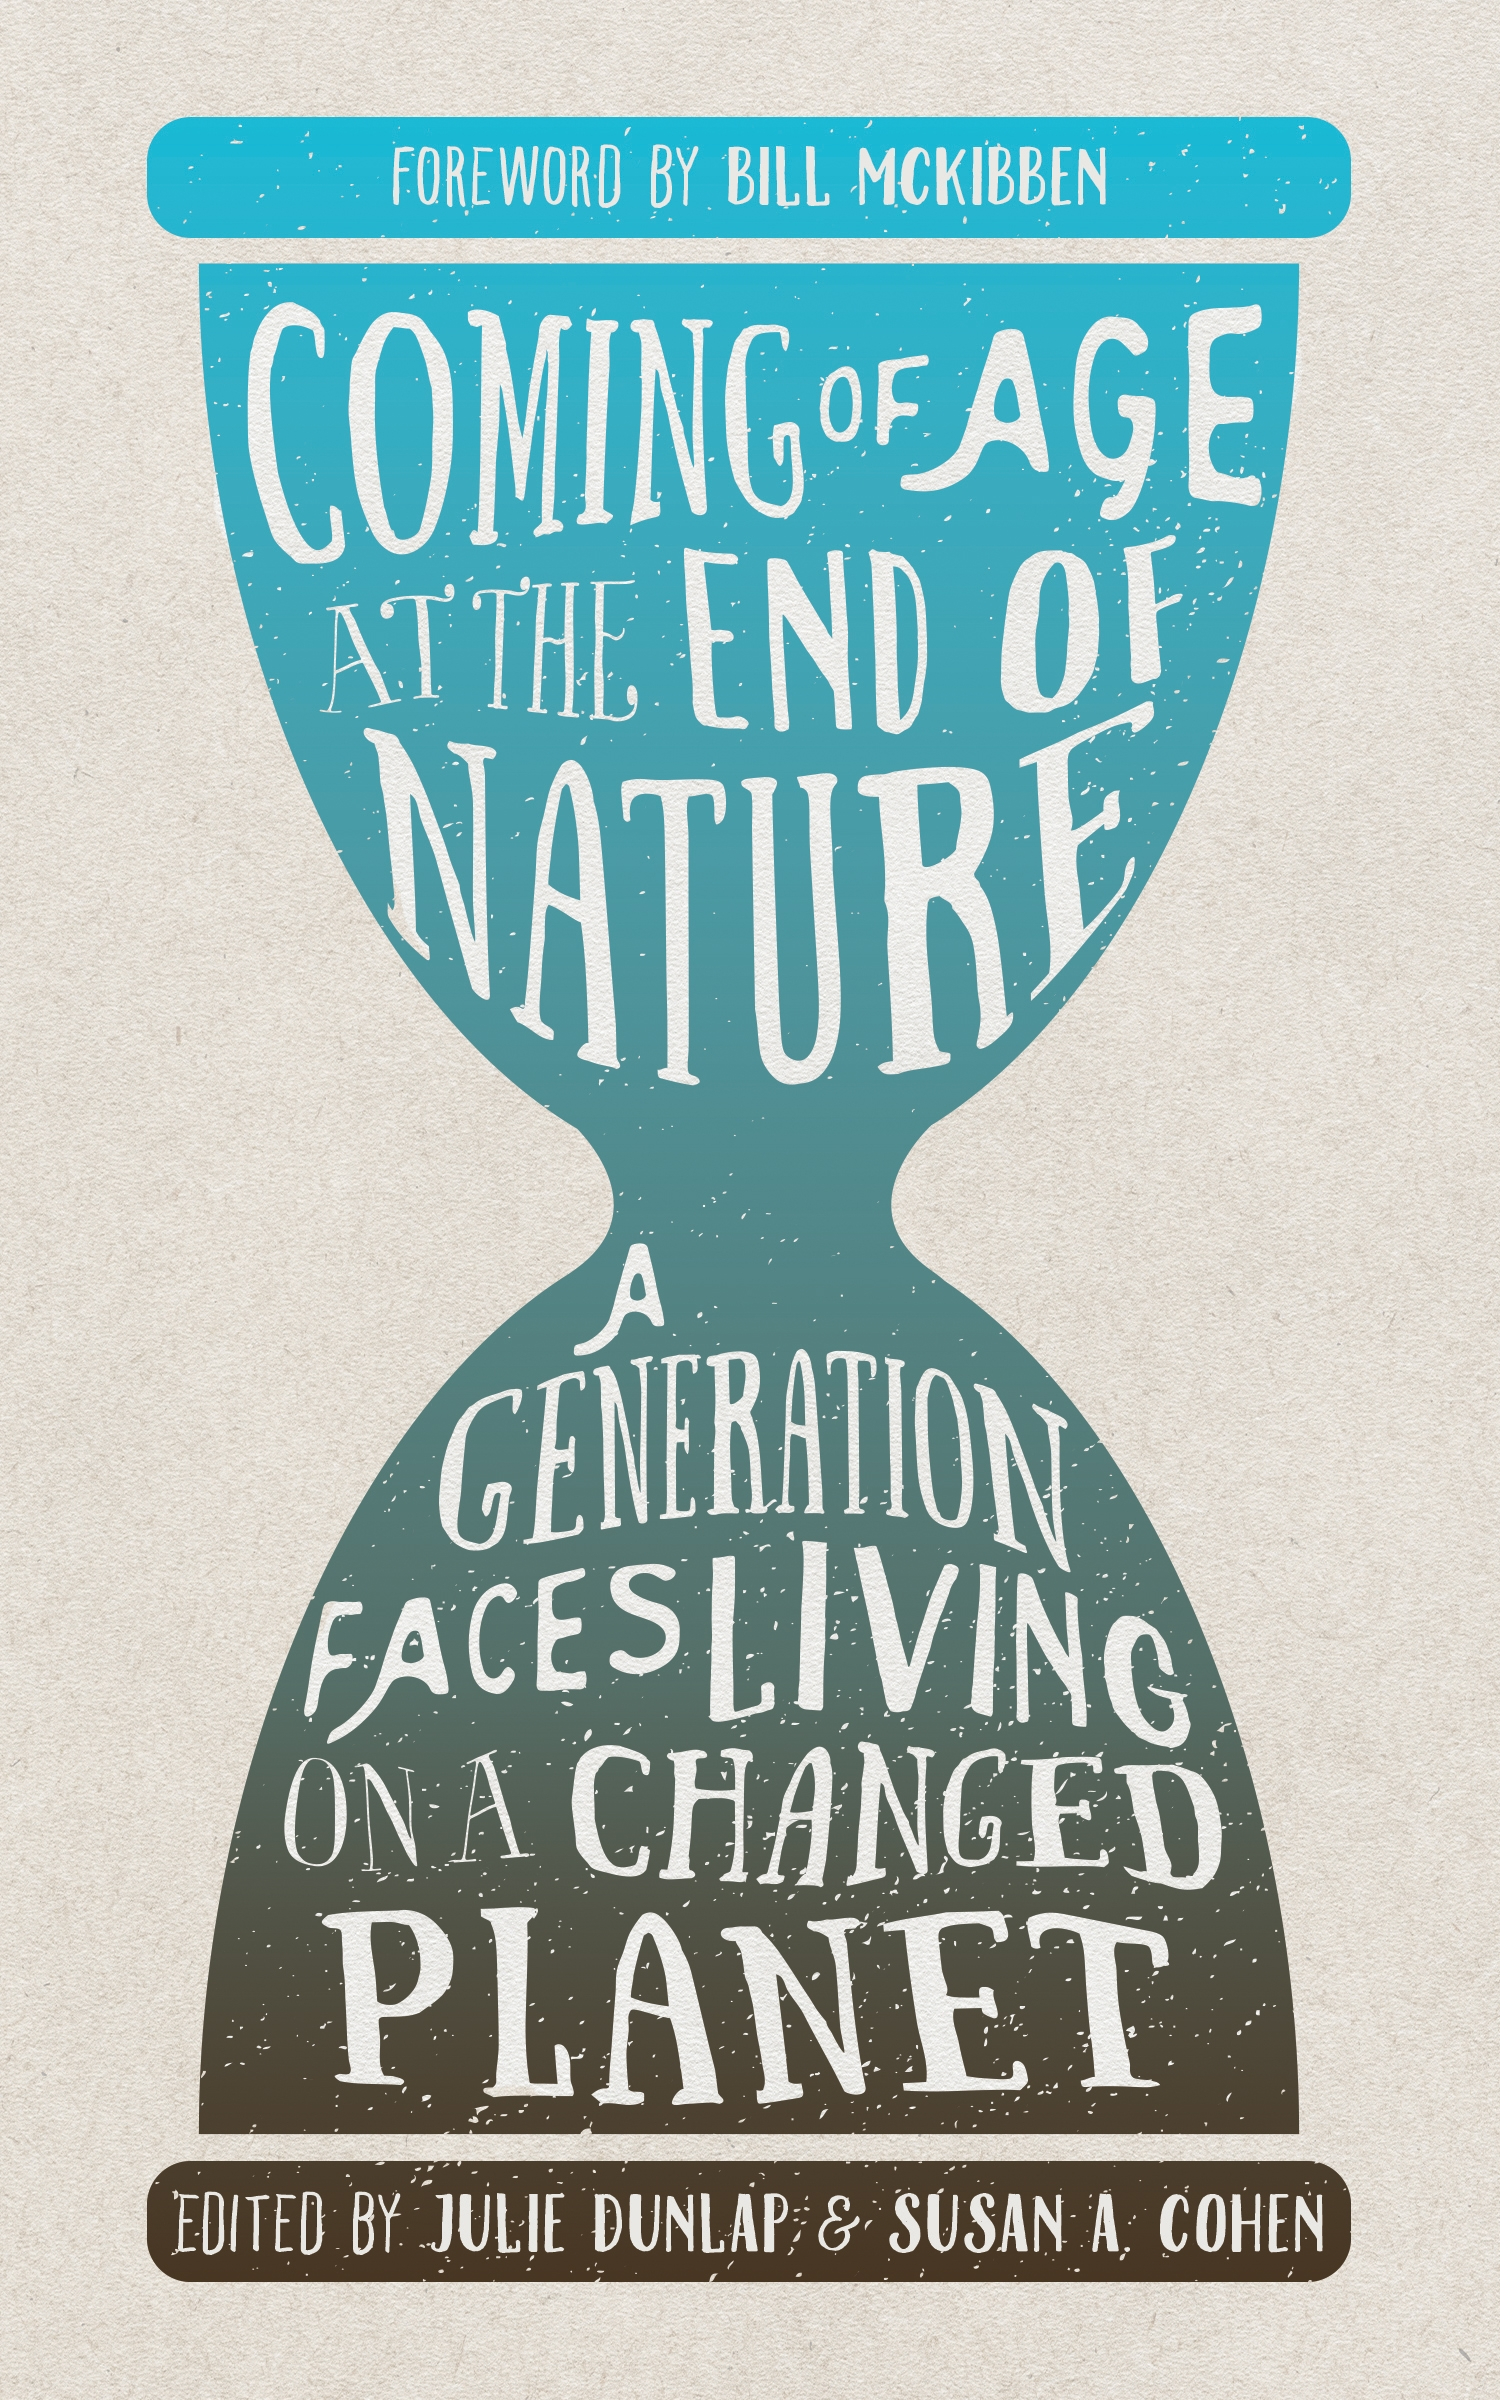 Review of Coming of Age at the End of Nature ...